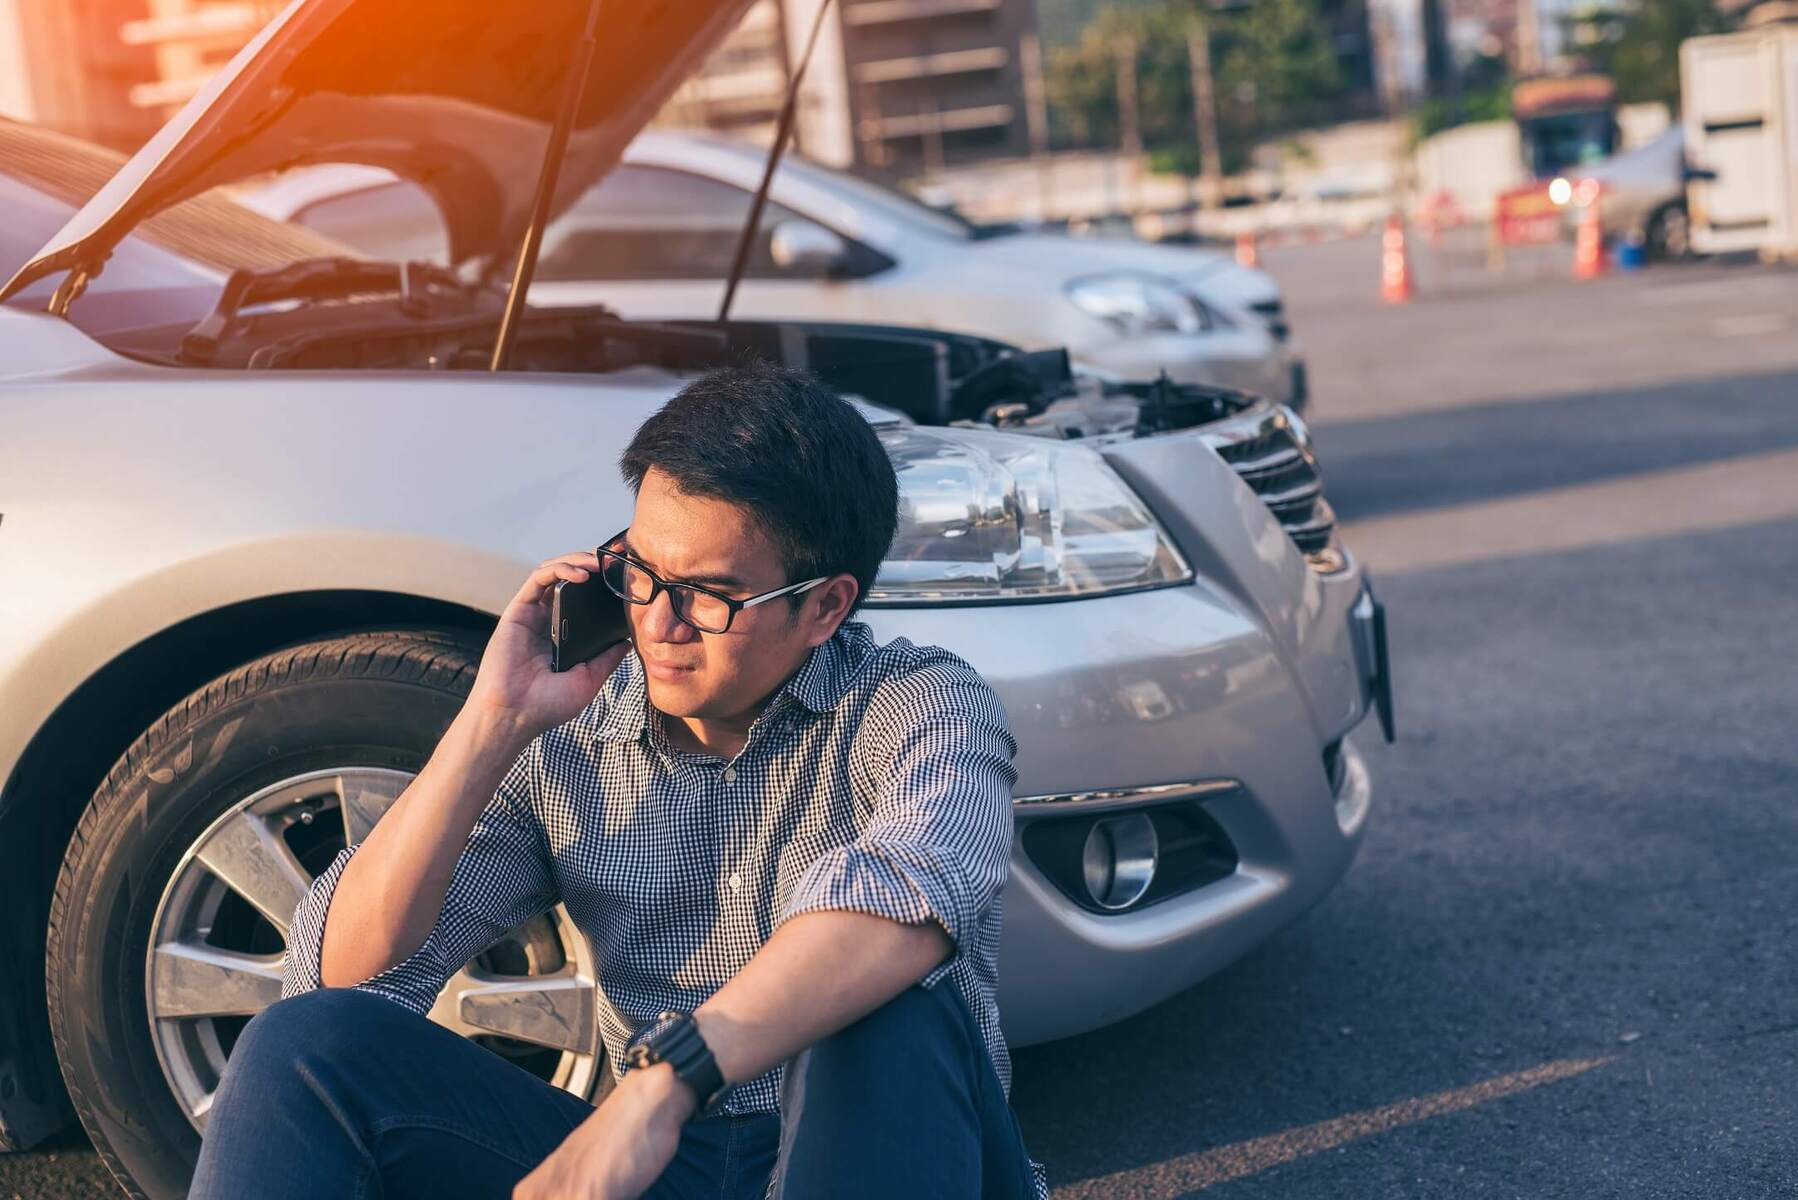 Visitors want to know more about what Roadside Assistance your company provides? Image